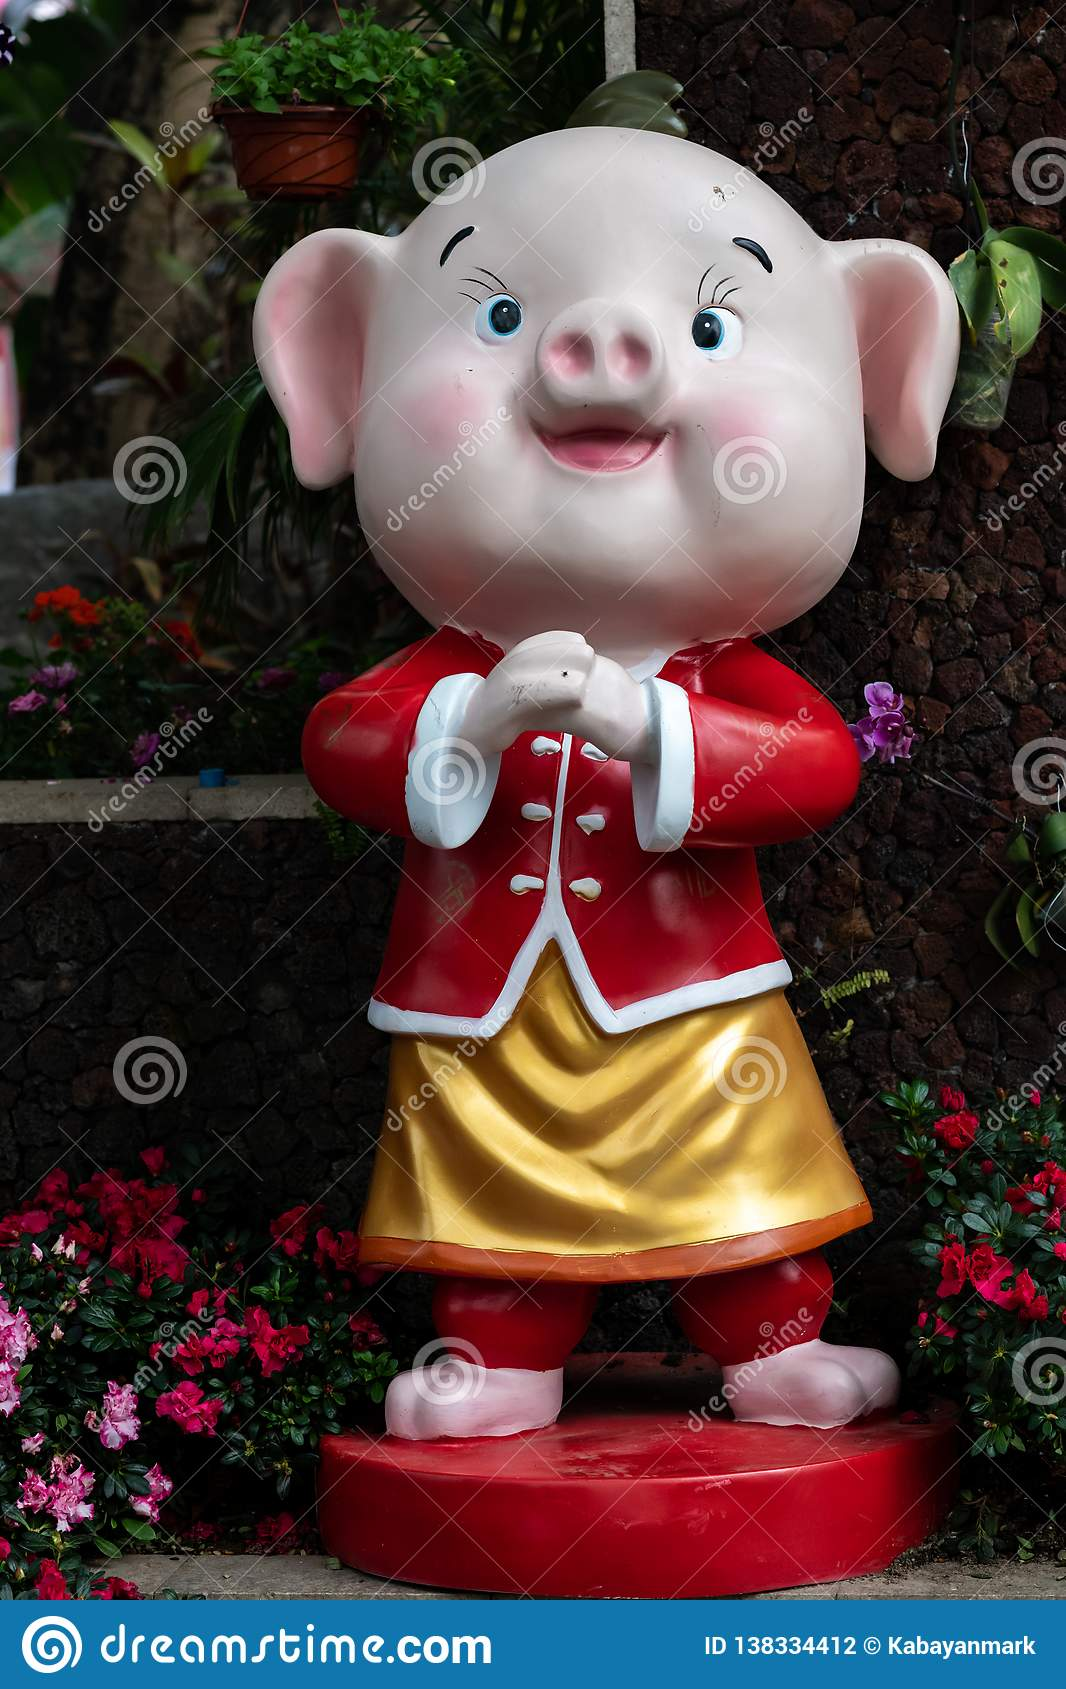 Year of the pig, Chinese New year 2019 lantern outdoor happy figure